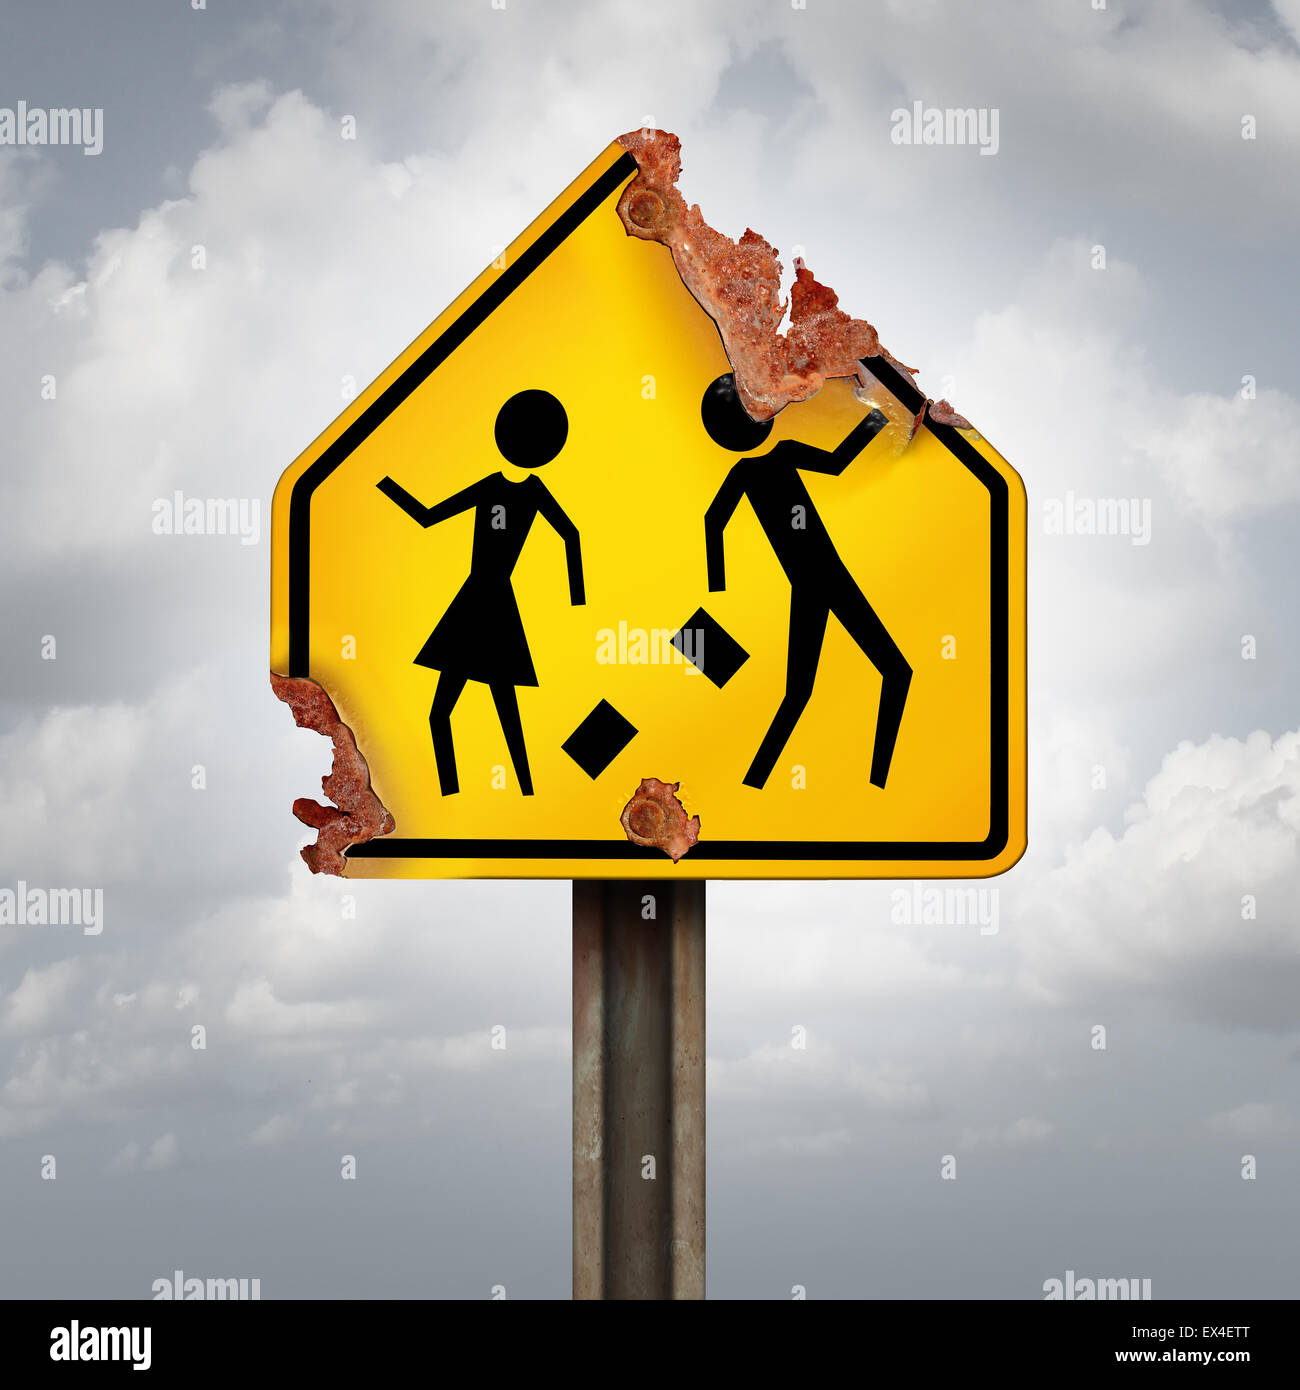 Education decline and neglected school problems concept as a rusted student crossing traffic sign as a symbol of - Stock Image